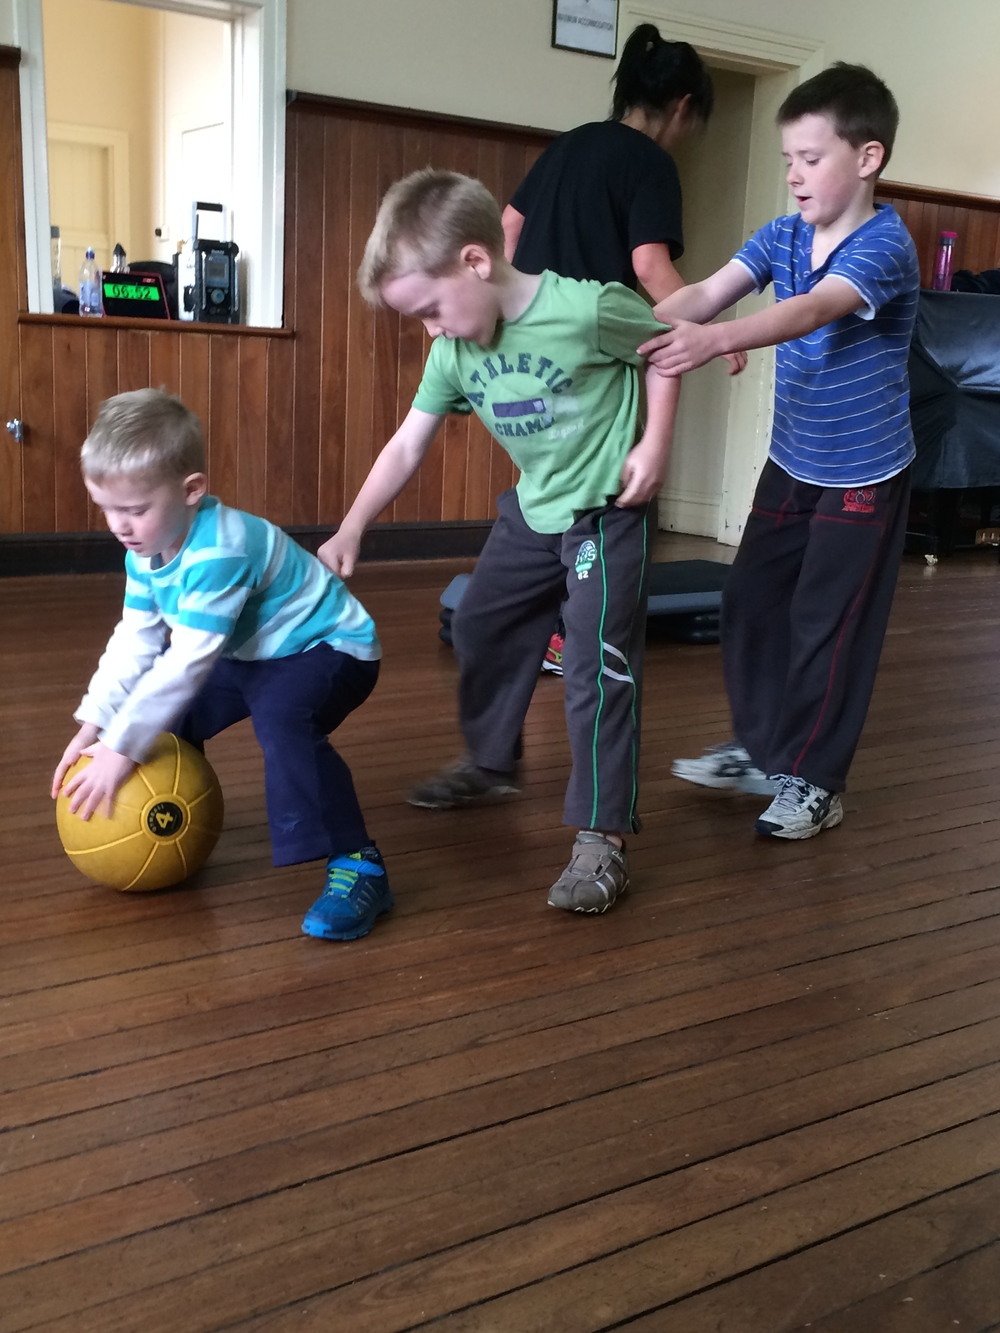 The little dudes play, tunnel ball while mummy exercises.